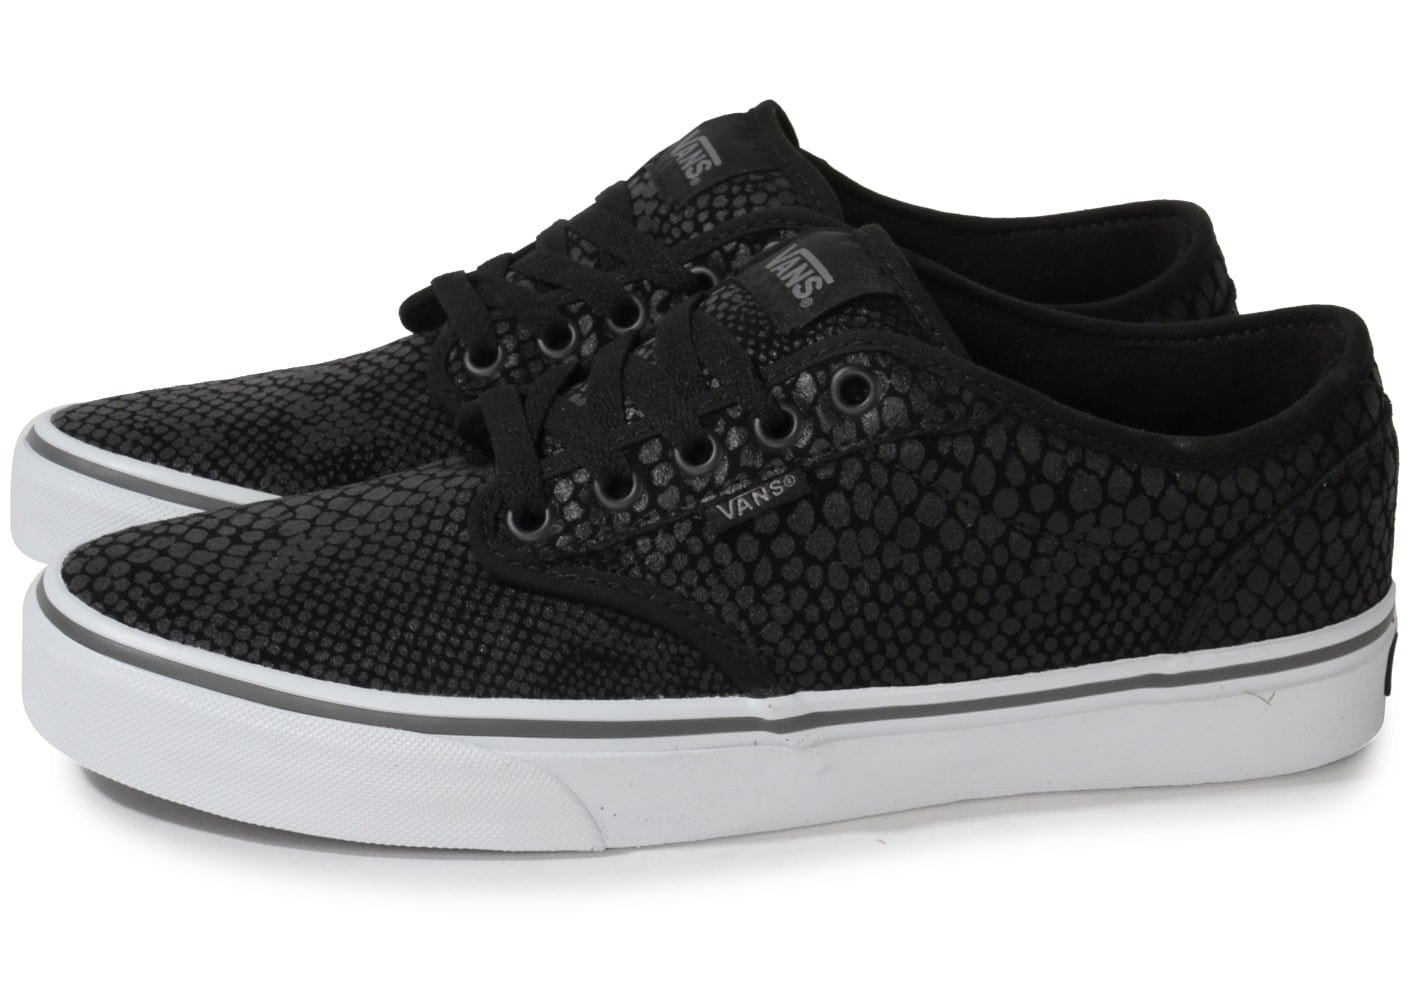 Noire Snake Atwood Baskets Chausport Chaussures Vans Homme RE6wapxZq